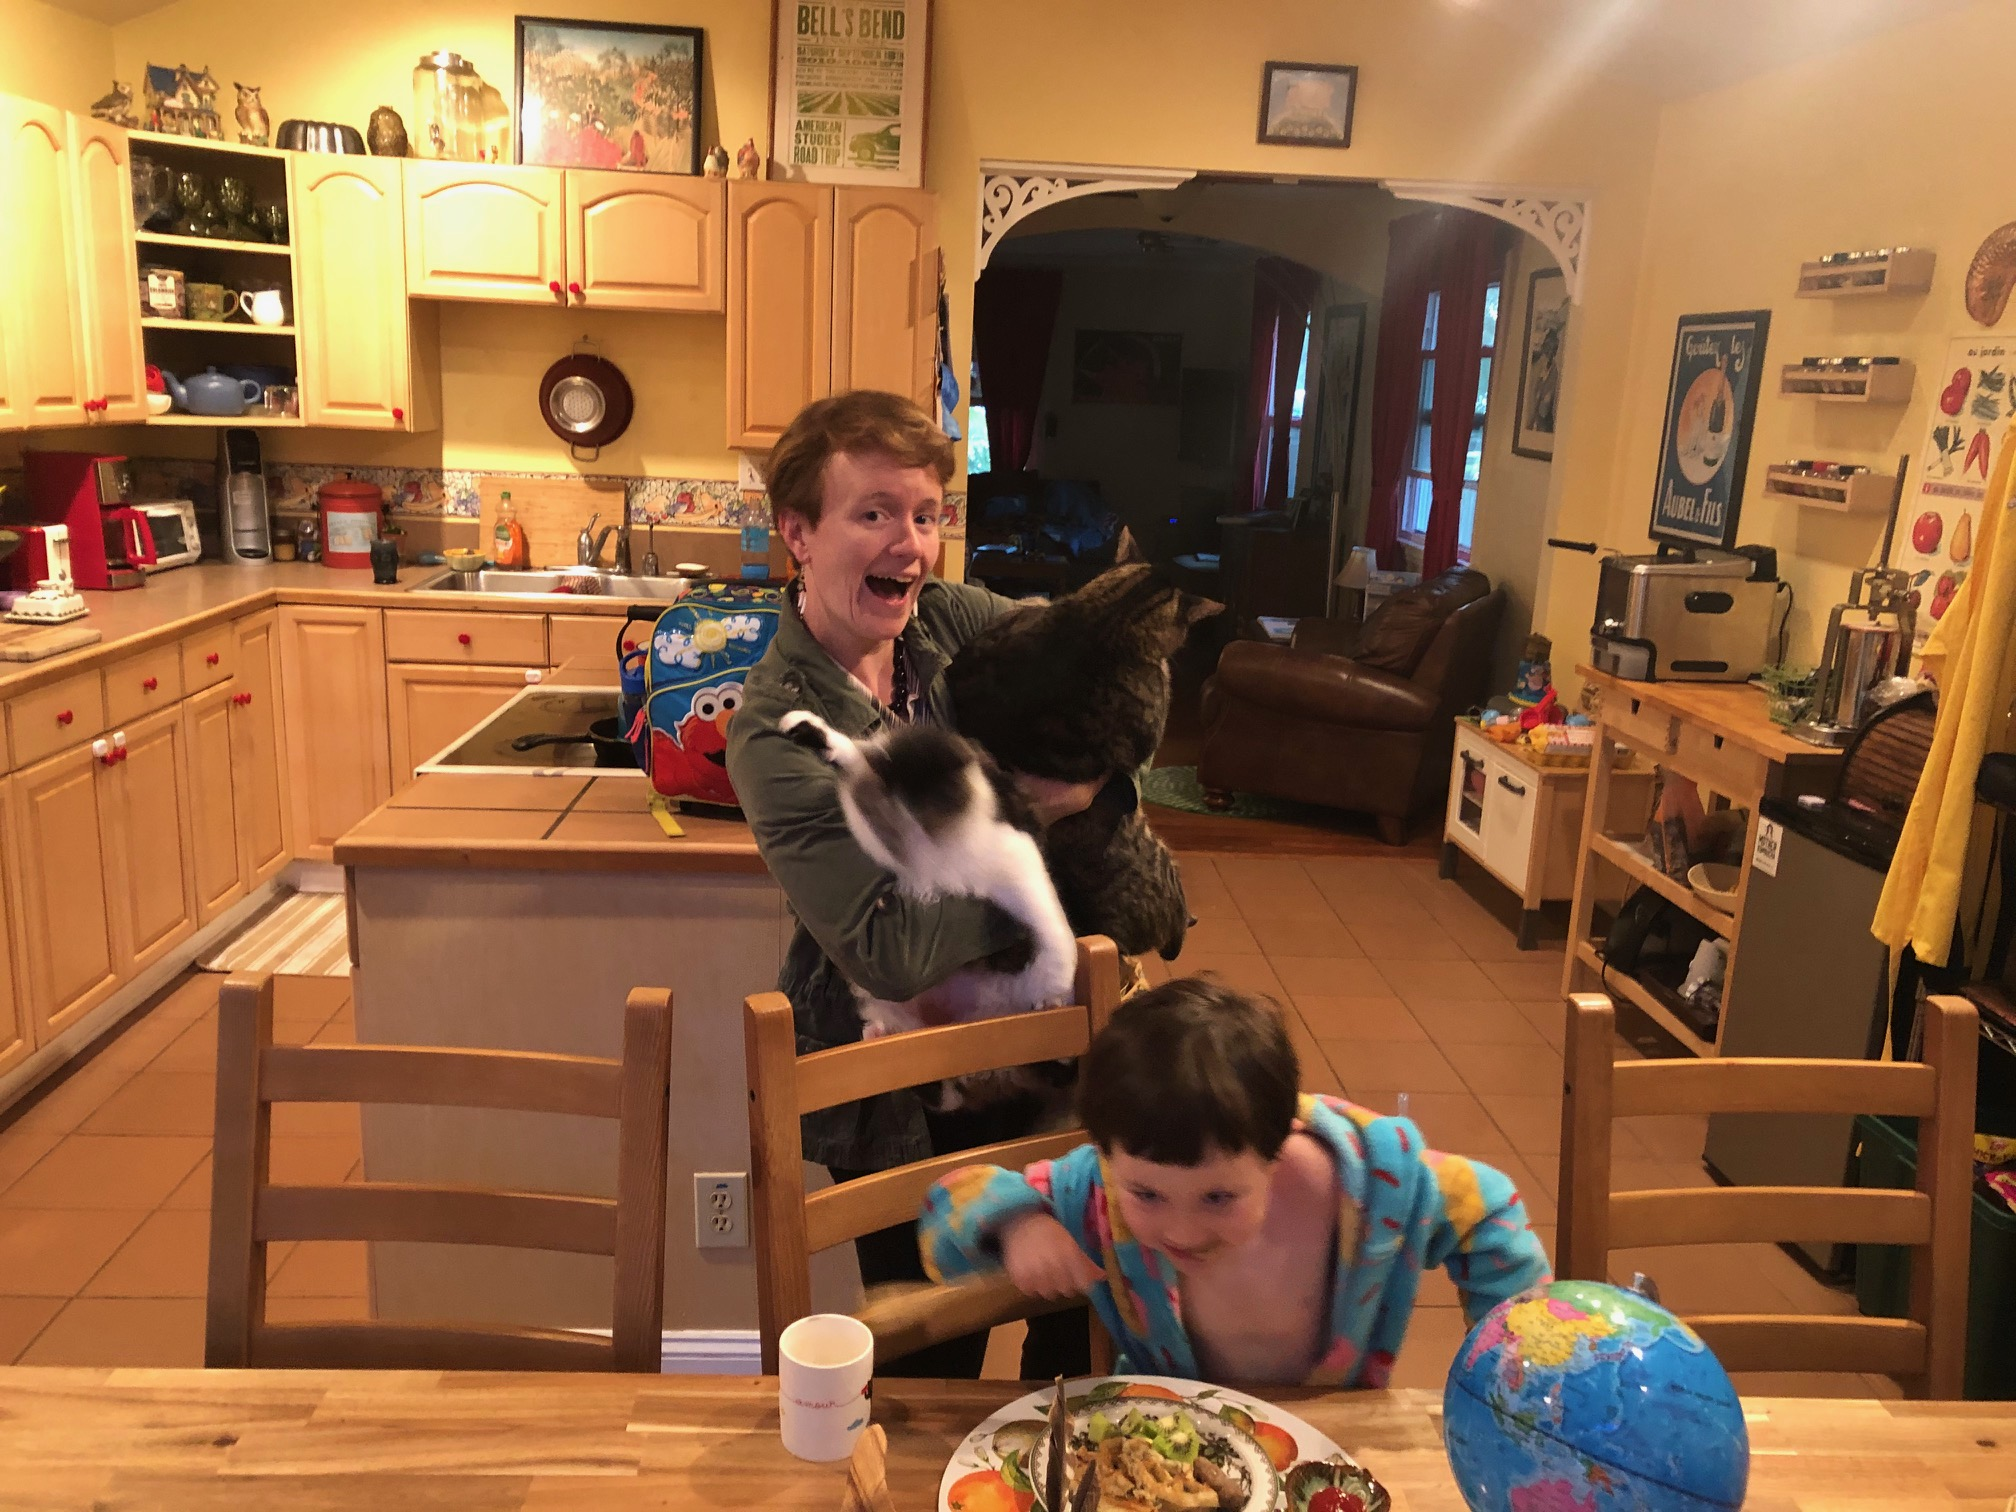 A woman holding two cats in a kitchen with a little boy at the table